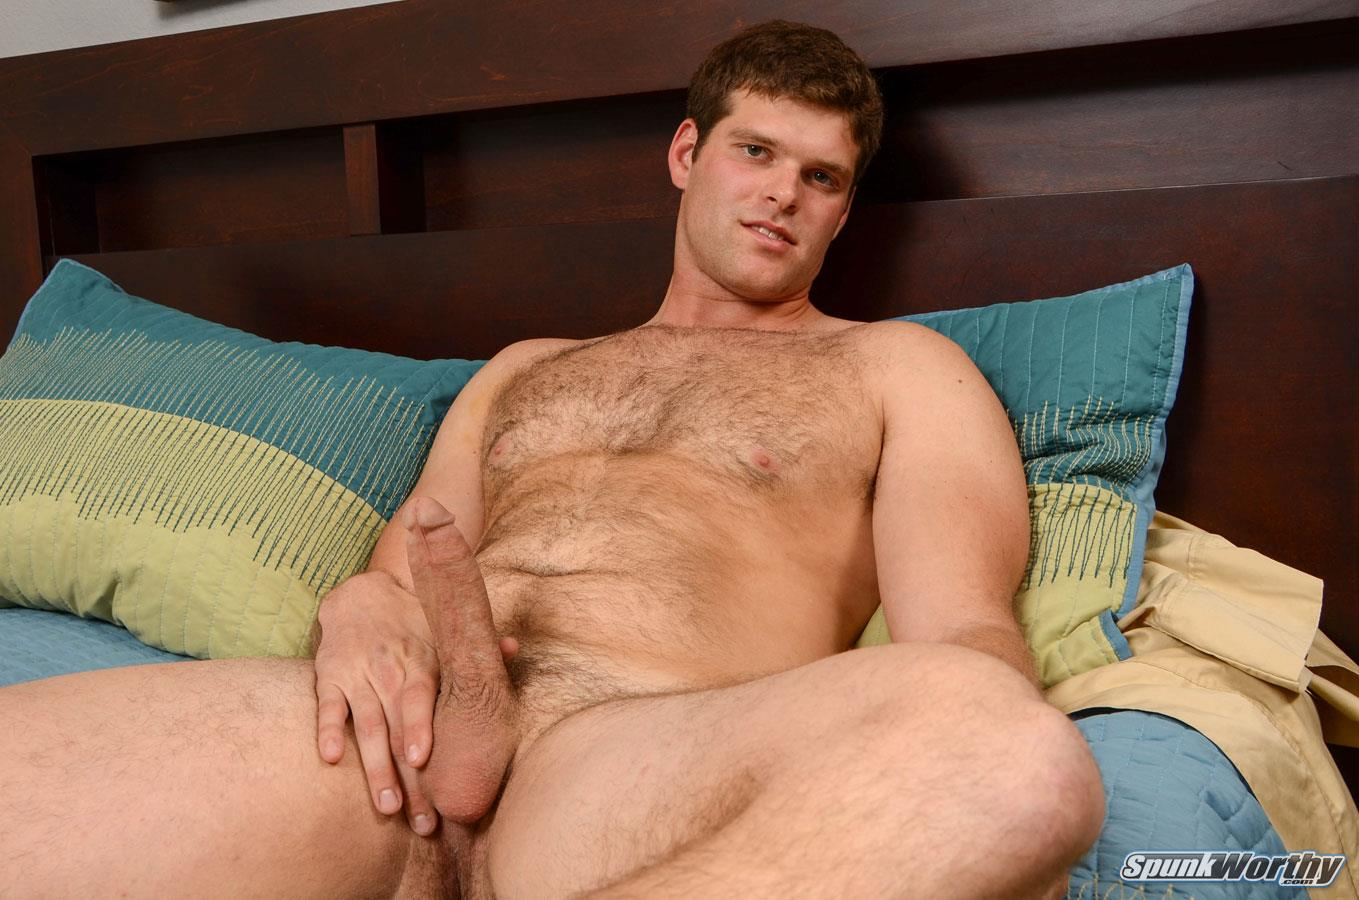 SpunkWorthy-Jake-Straight-Hairy-Navy-Bear-Cub-Jerking-Off-Amateur-Gay-Porn-08 Straight Hairy Navy Bear Cub Jerks His Hairy Cock